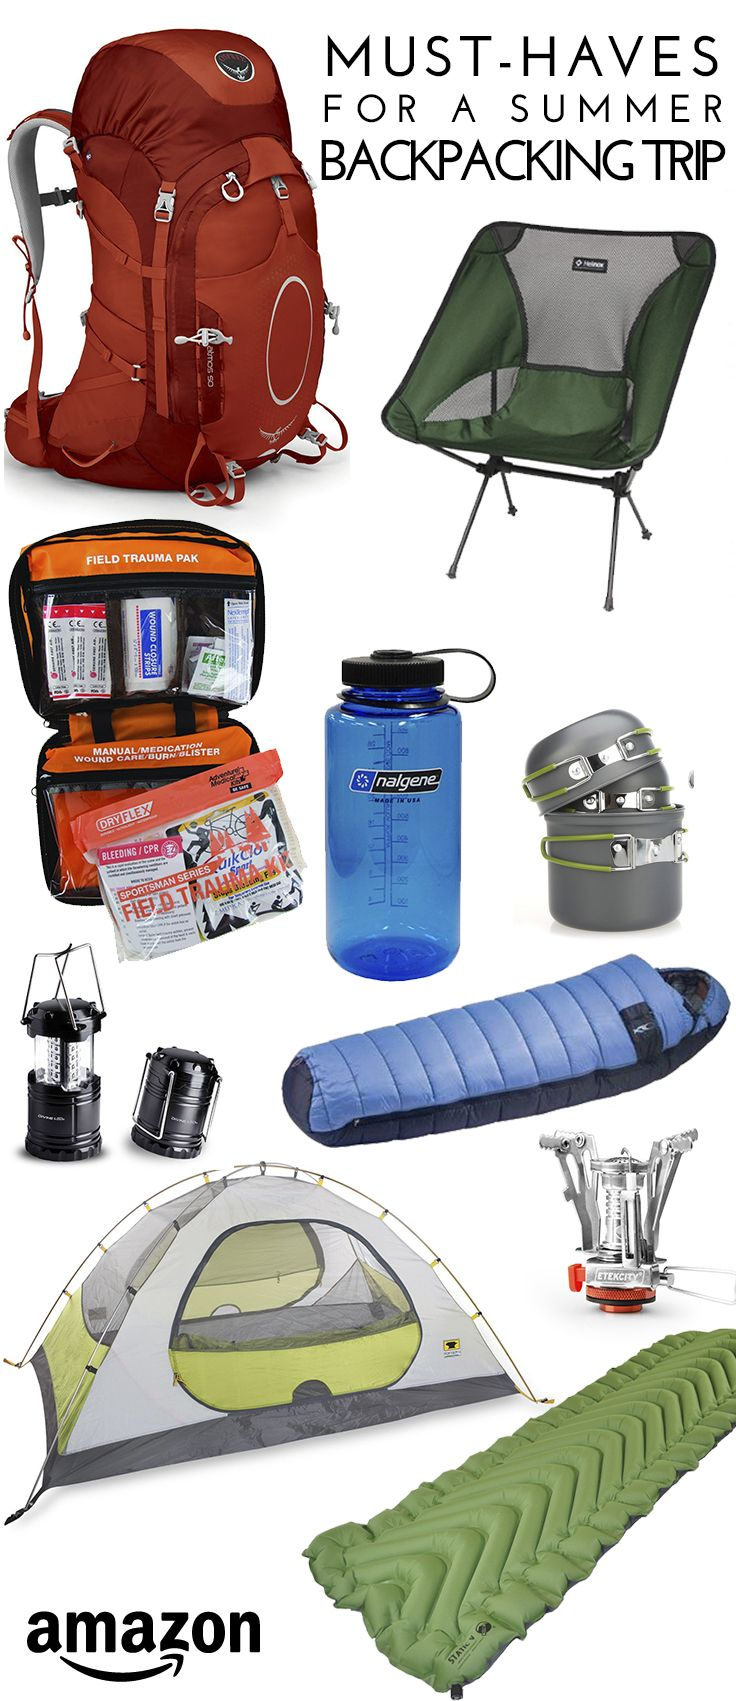 Must-have Gear for a Summer Backpacking Trip || Amazon.com